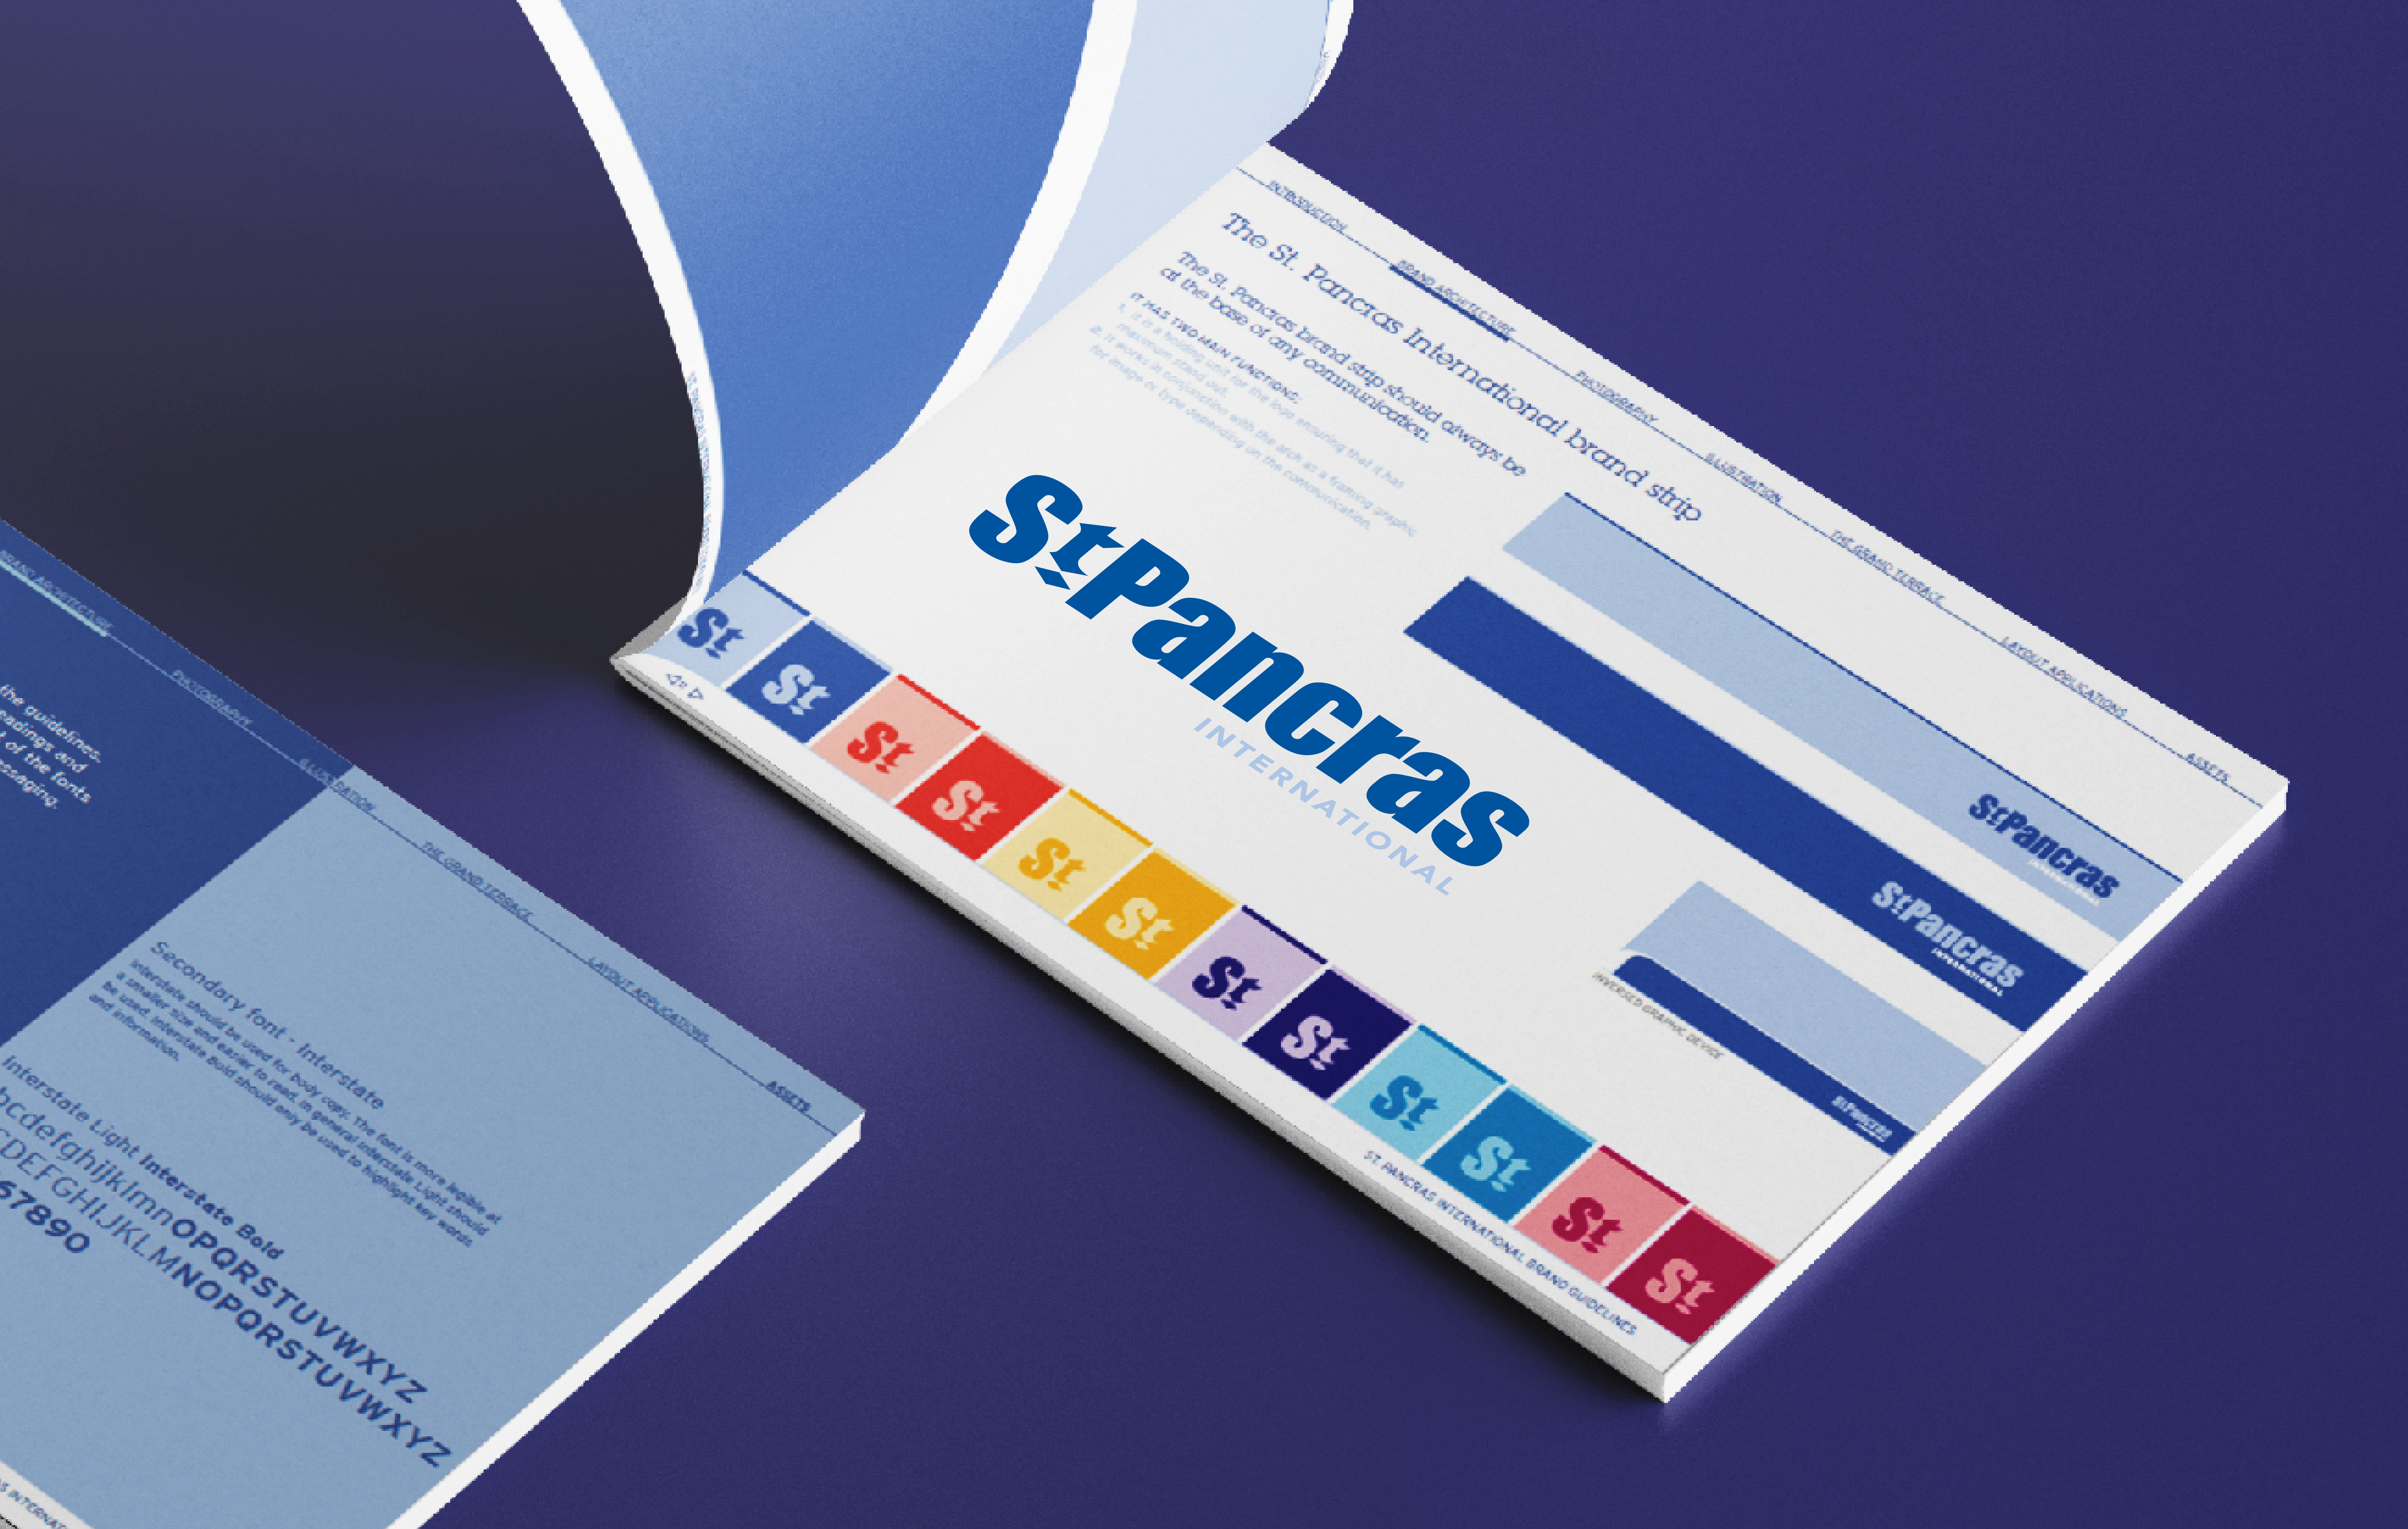 St Pancras brand guidelines cover